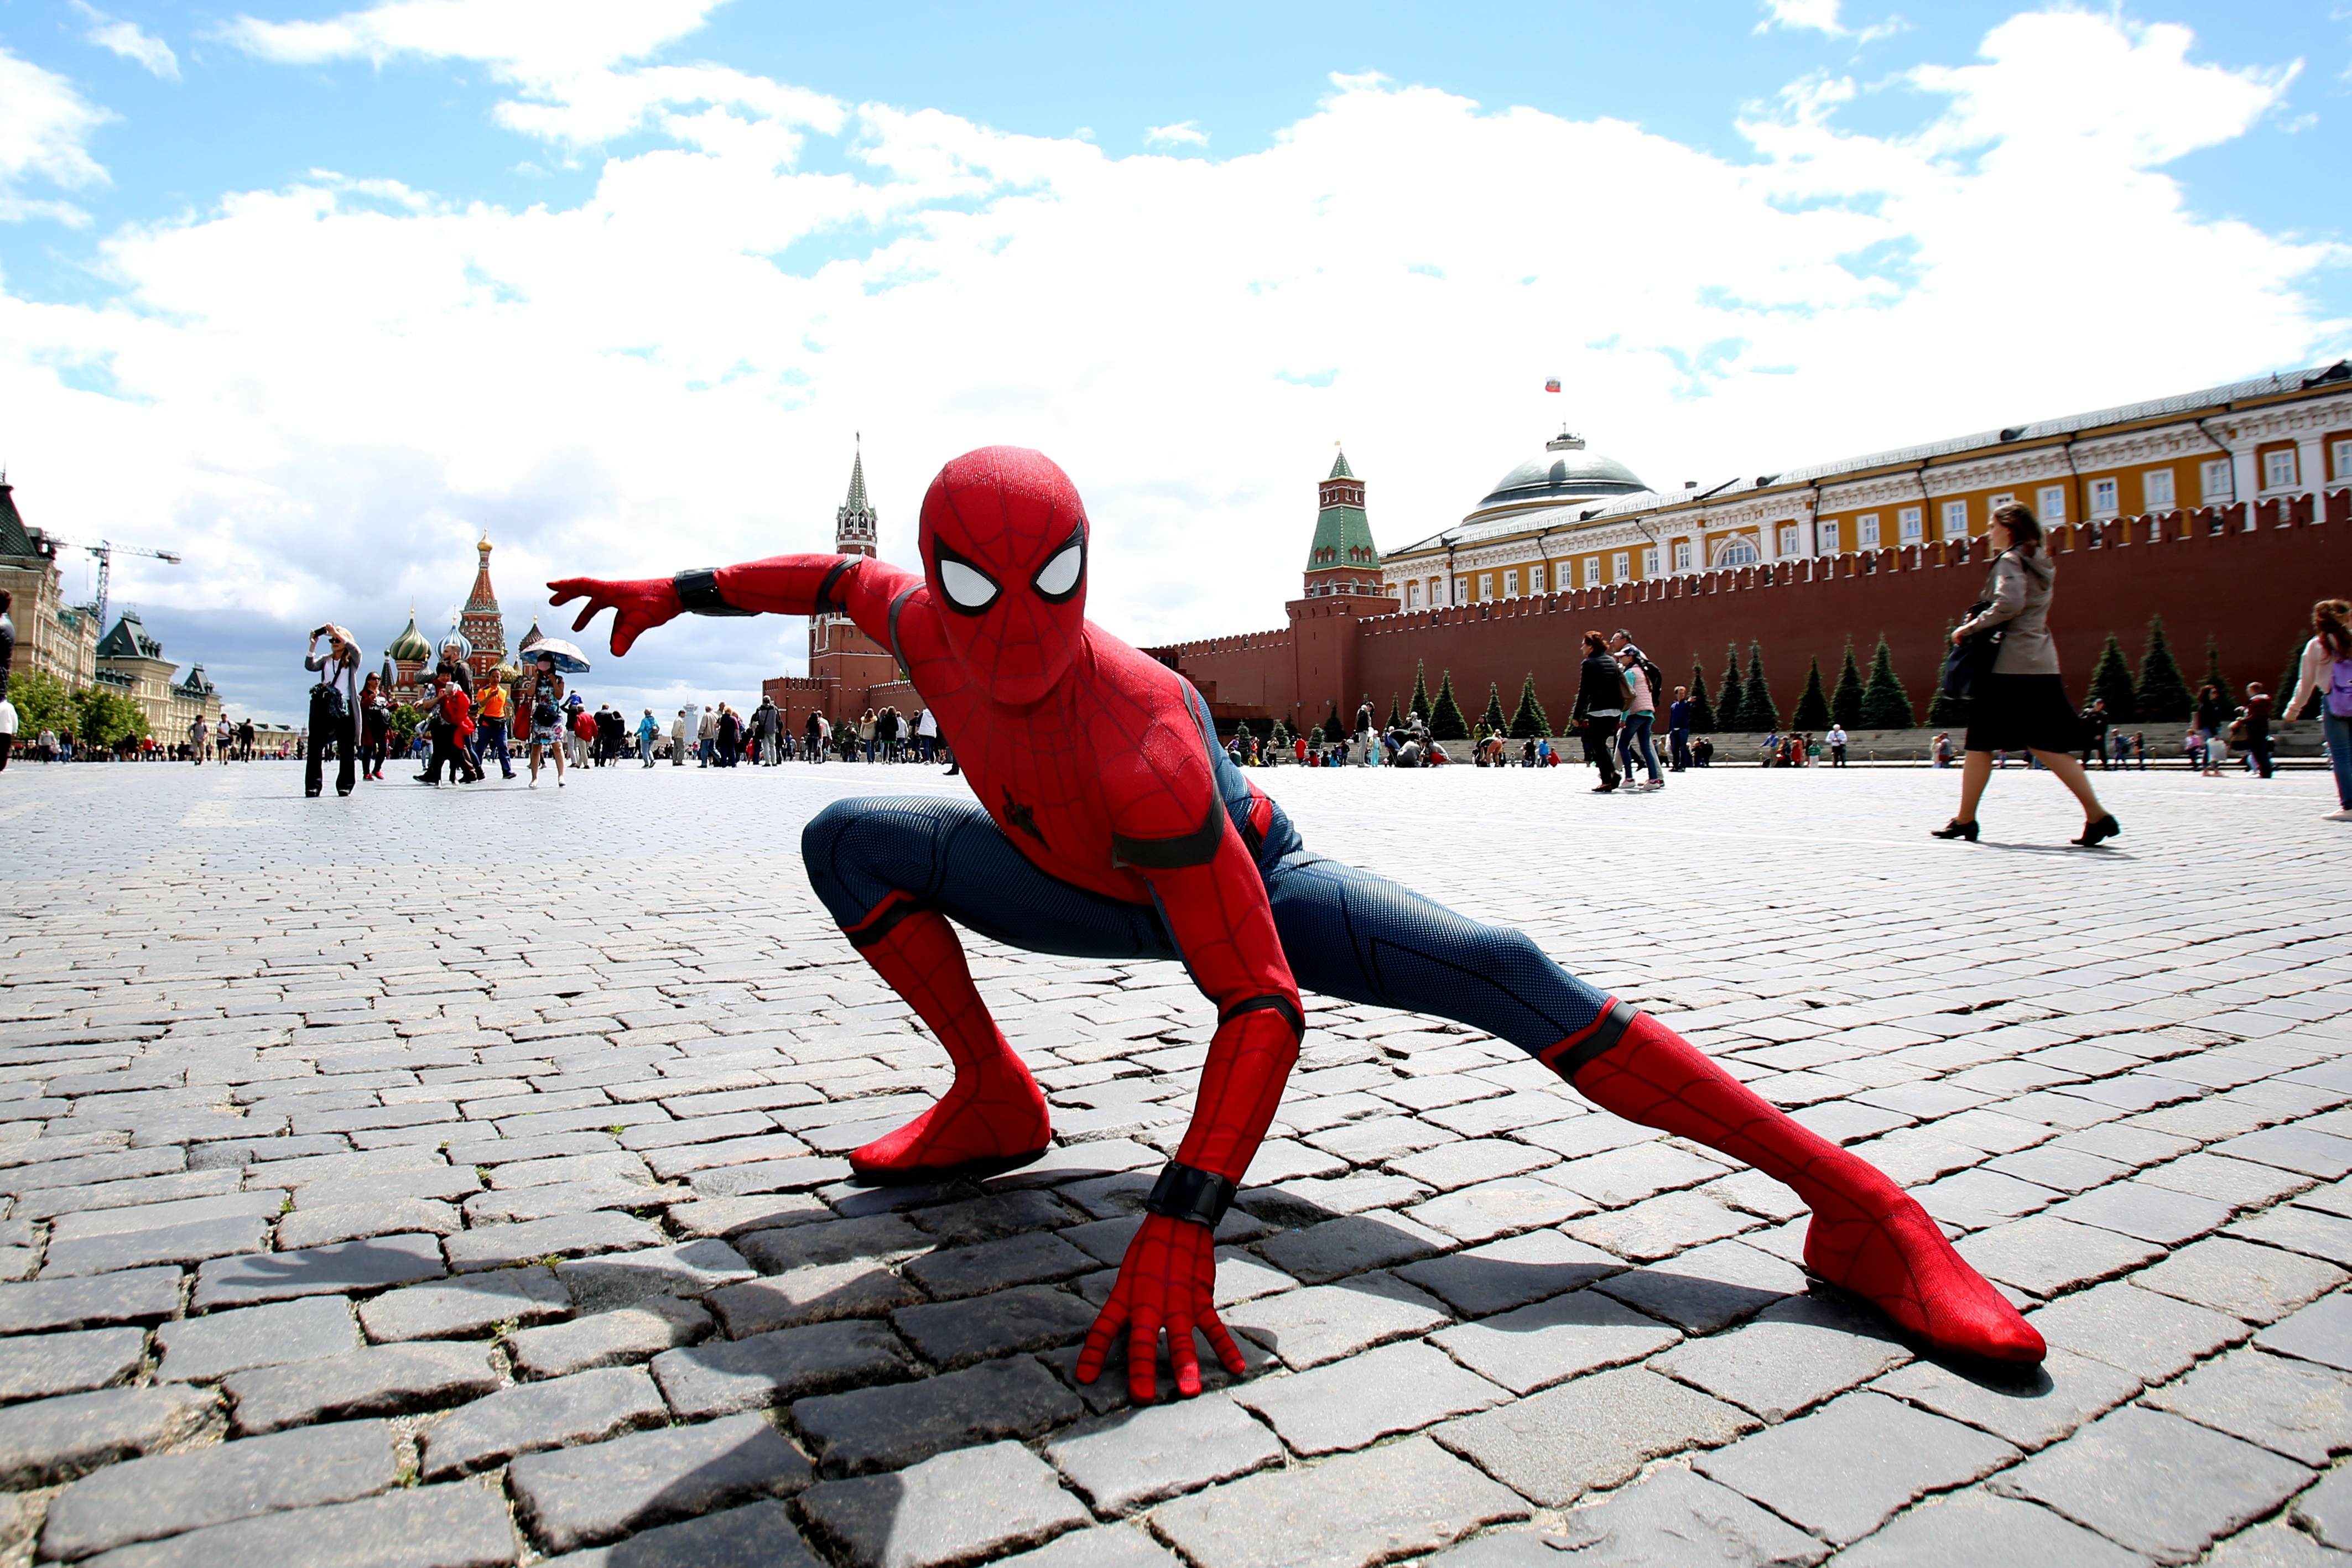 MOSCOW, RUSSIA - JUNE 21: Actor dressed in the authentic spider-man costume poses for a picture on the Red Square to support Spider-Man: Homecoming on June 21, 2017 in Moscow, Russia.